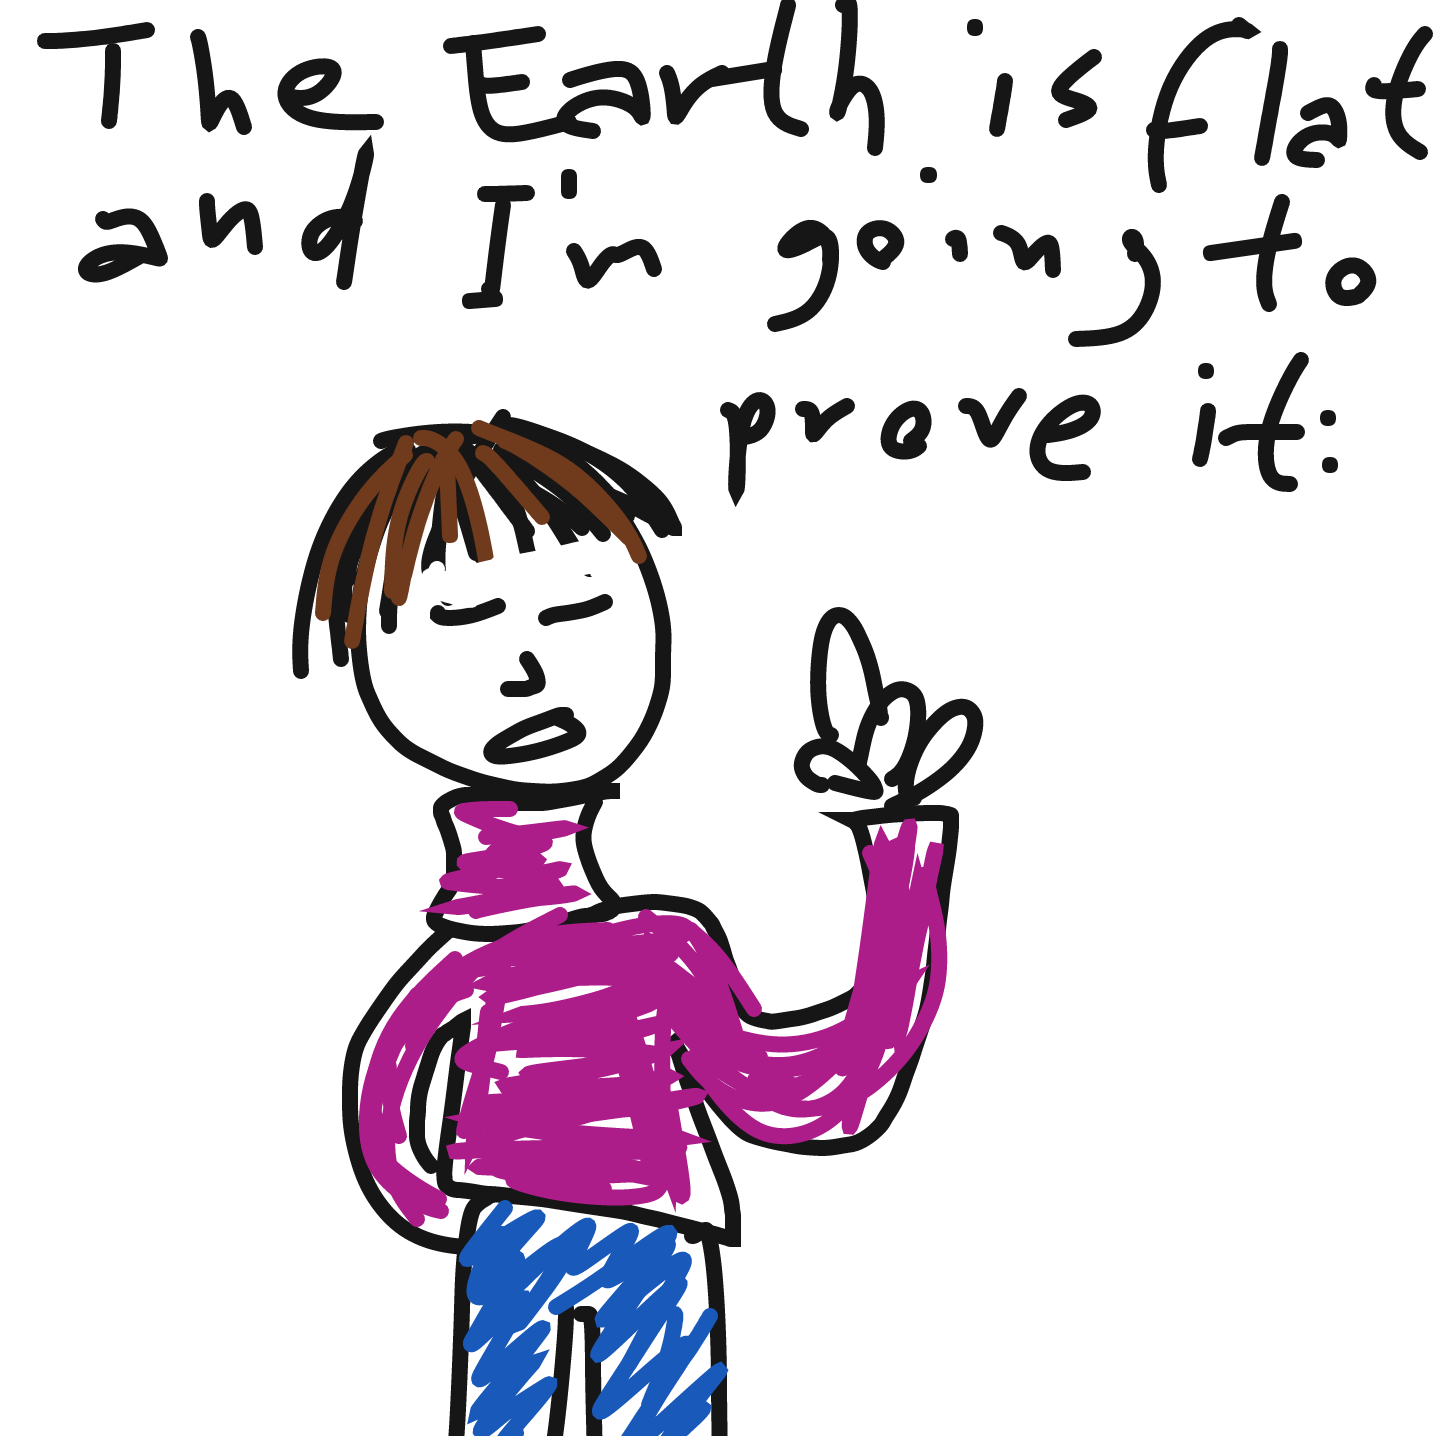 Drawing in Flat Earth by Nordic Hamfist